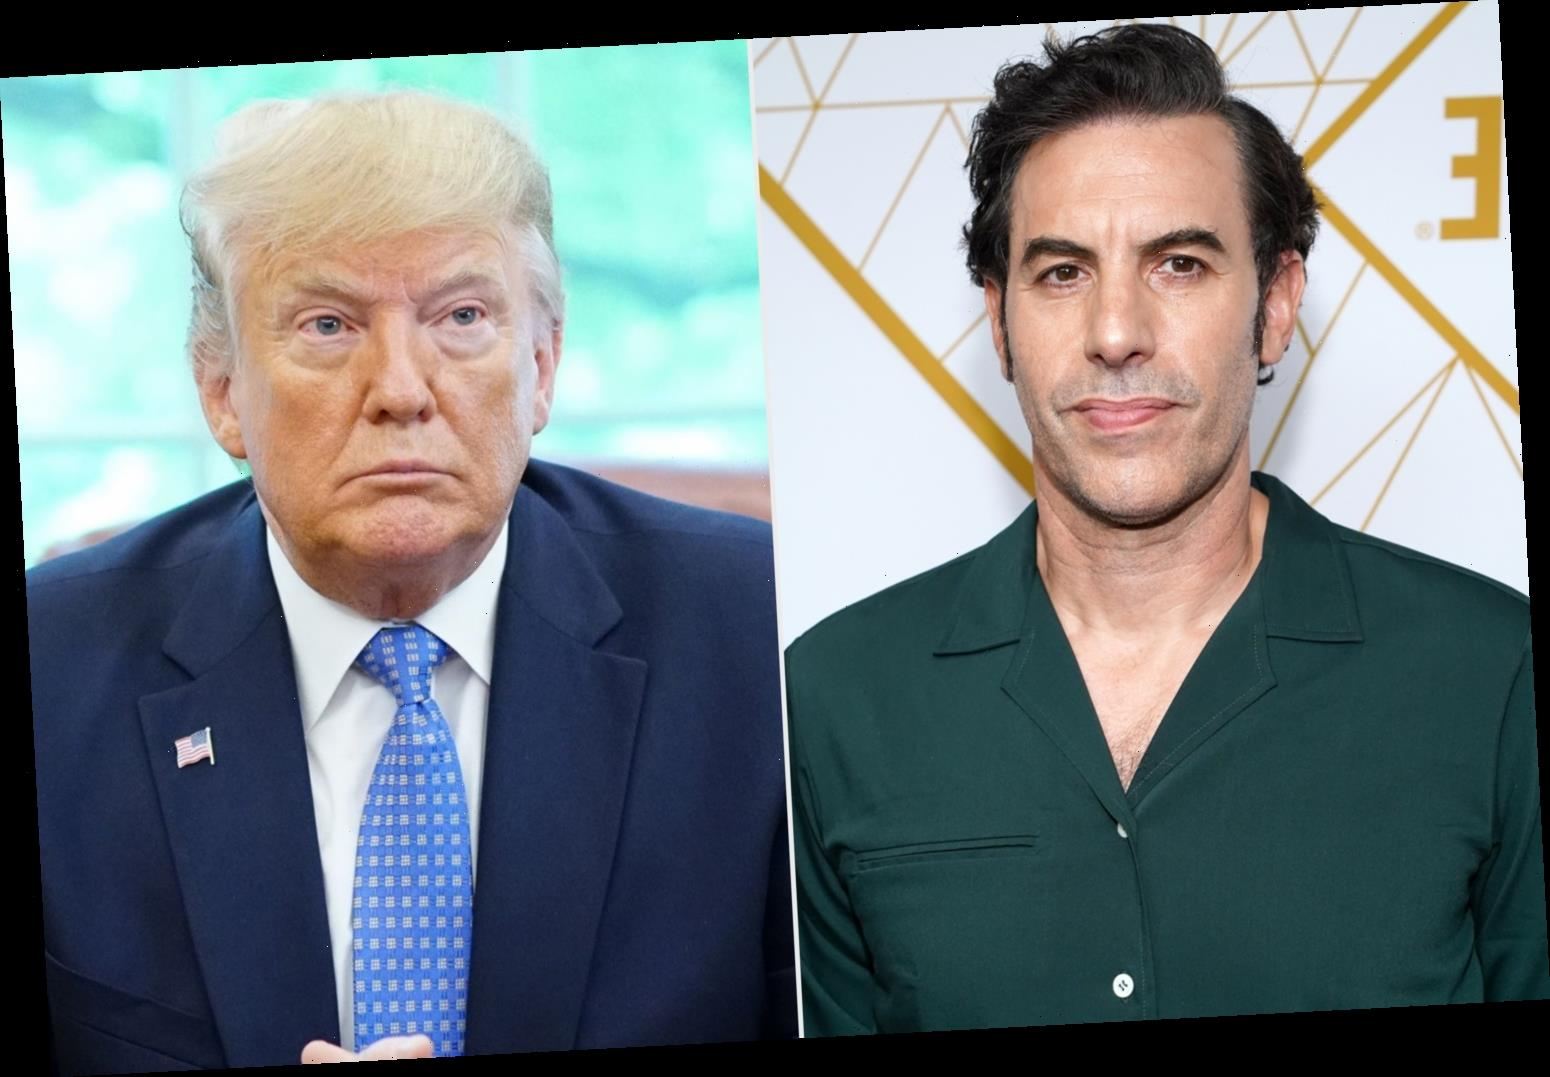 Sacha Baron Cohen Calls on Facebook, Twitter, YouTube to Ban President Trump 'Once and for All'